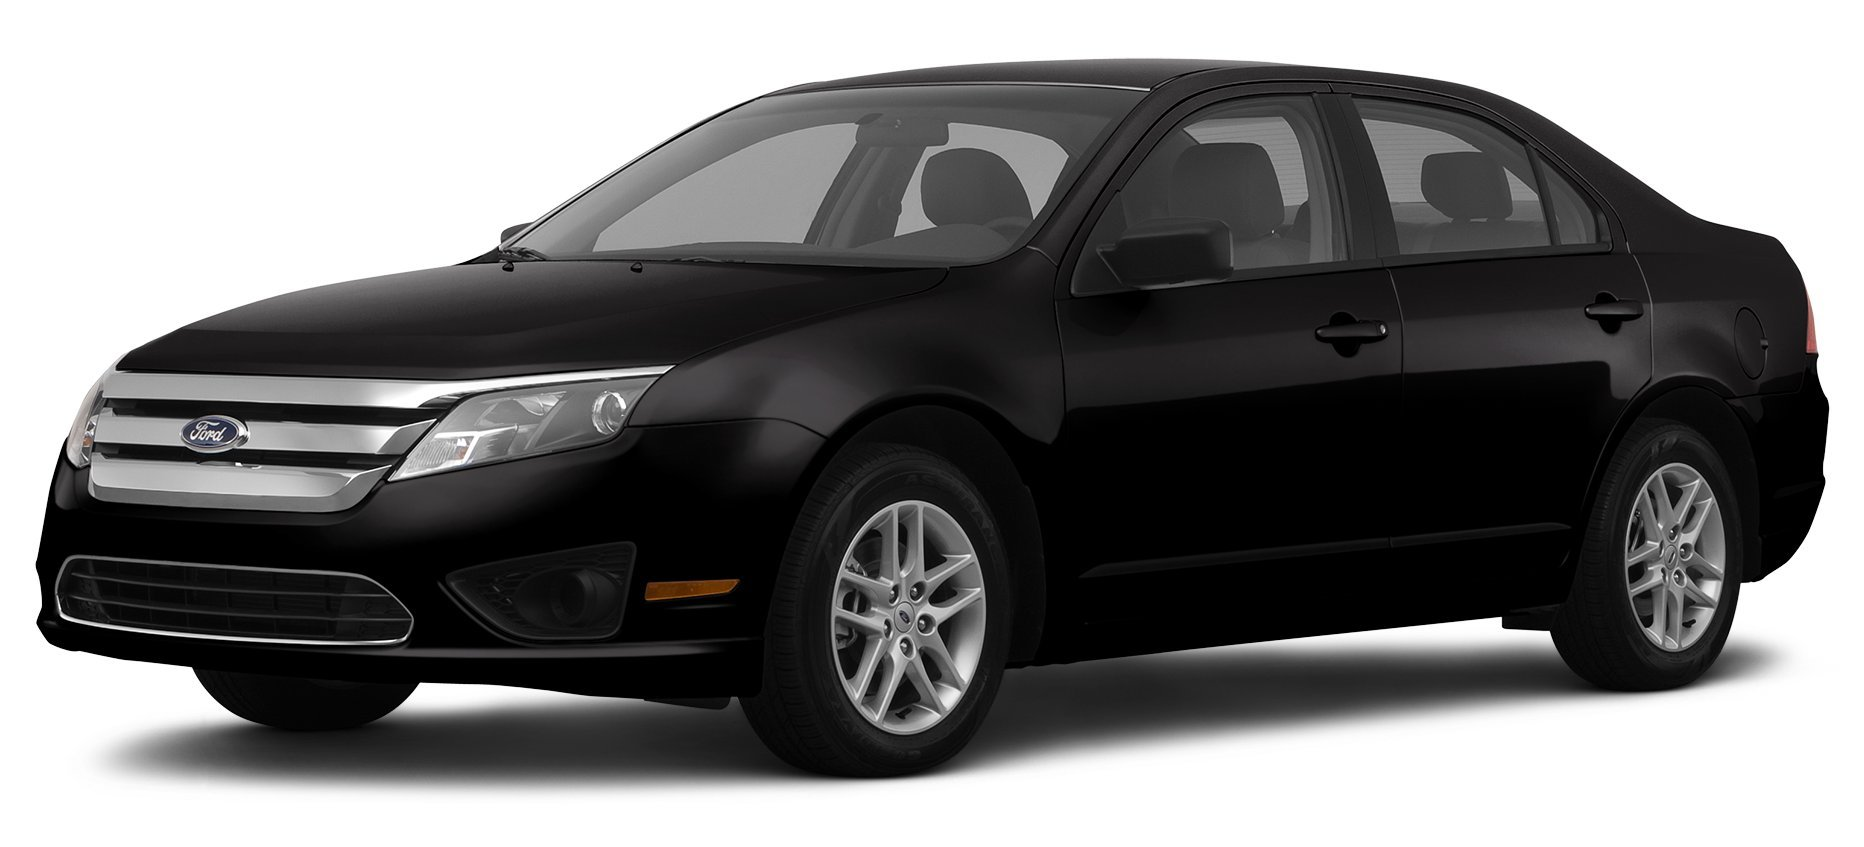 Amazon com: 2012 Ford Fusion Reviews, Images, and Specs